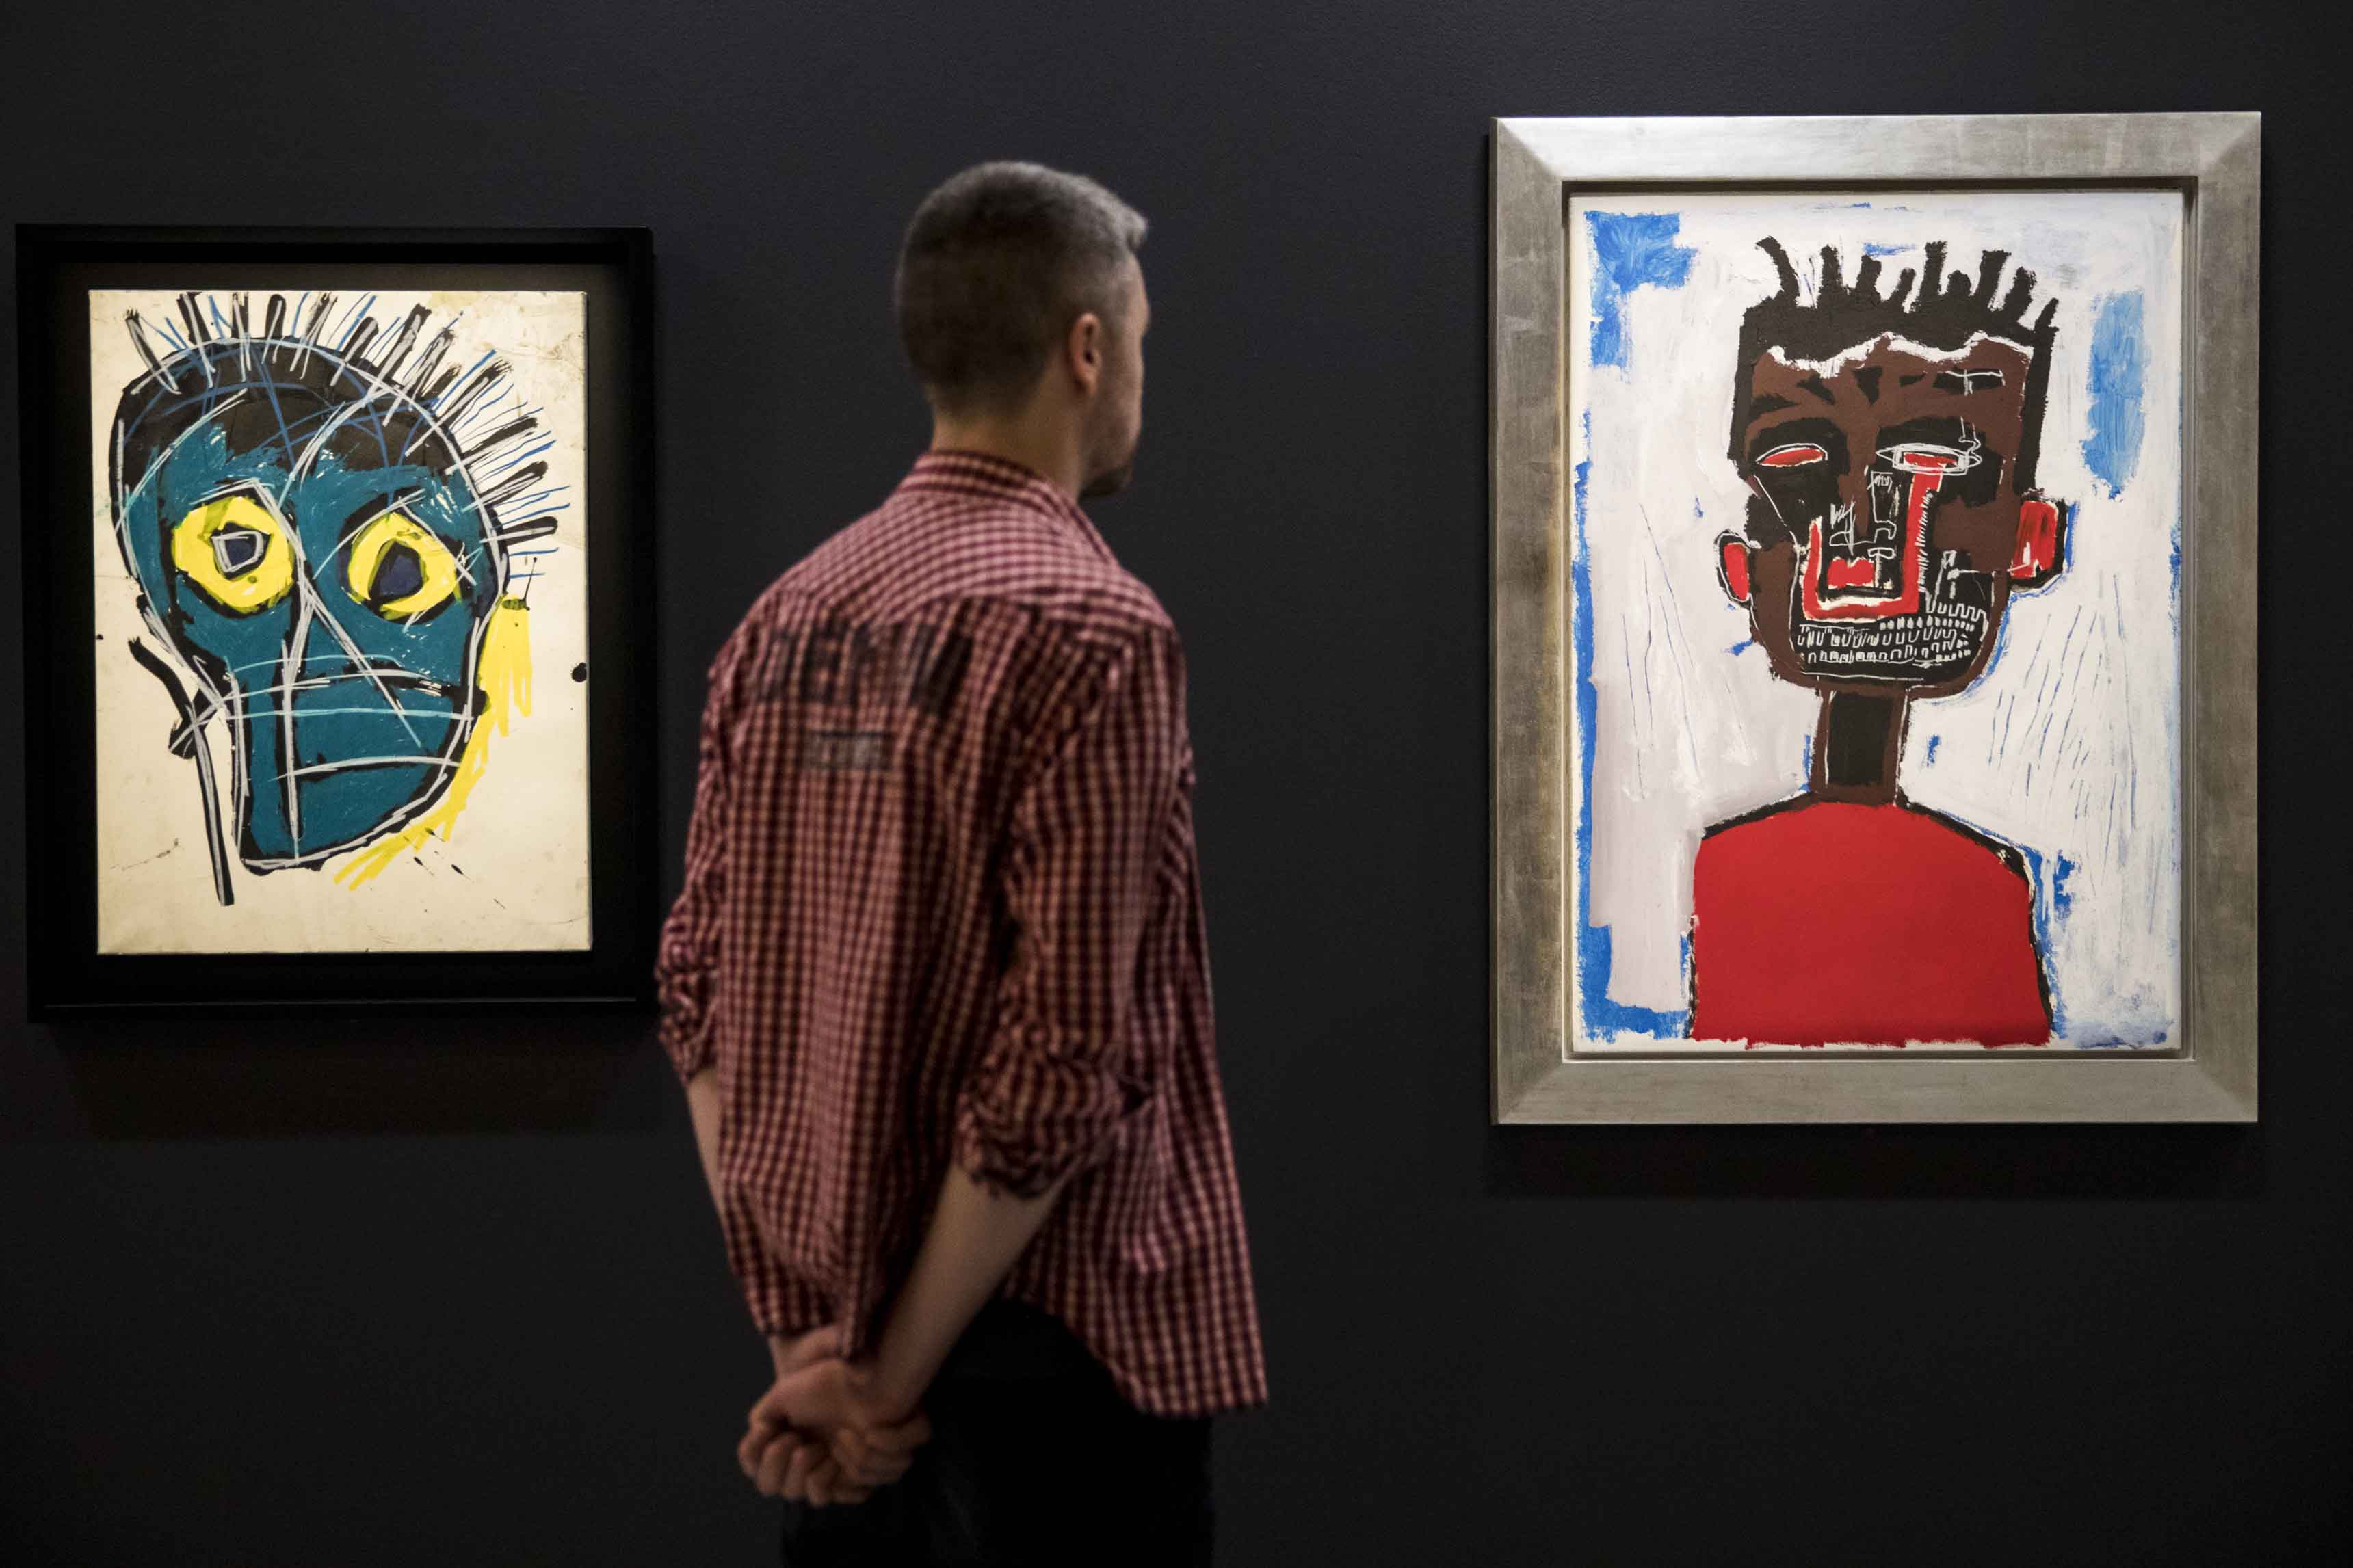 Basquiat: Boom For Real Installation view Barbican Art Gallery 21 September 2017 – 28 January 2018 © Tristan Fewings / Getty Images Artworks (left to right): Jean-Michel Basquiat, Untitled, 1983 W&K – Wienerroither & Kohlbacher, Vienna © The Estate of Jean-Michel Basquiat. Licensed by Artestar, New York. Courtesy W&K – Wienerroither & Kohlbacher, Vienna. Jean-Michel Basquiat, Self Portrait, 1984 Private collection. © The Estate of Jean-Michel Basquiat. Licensed by Artestar, New York.